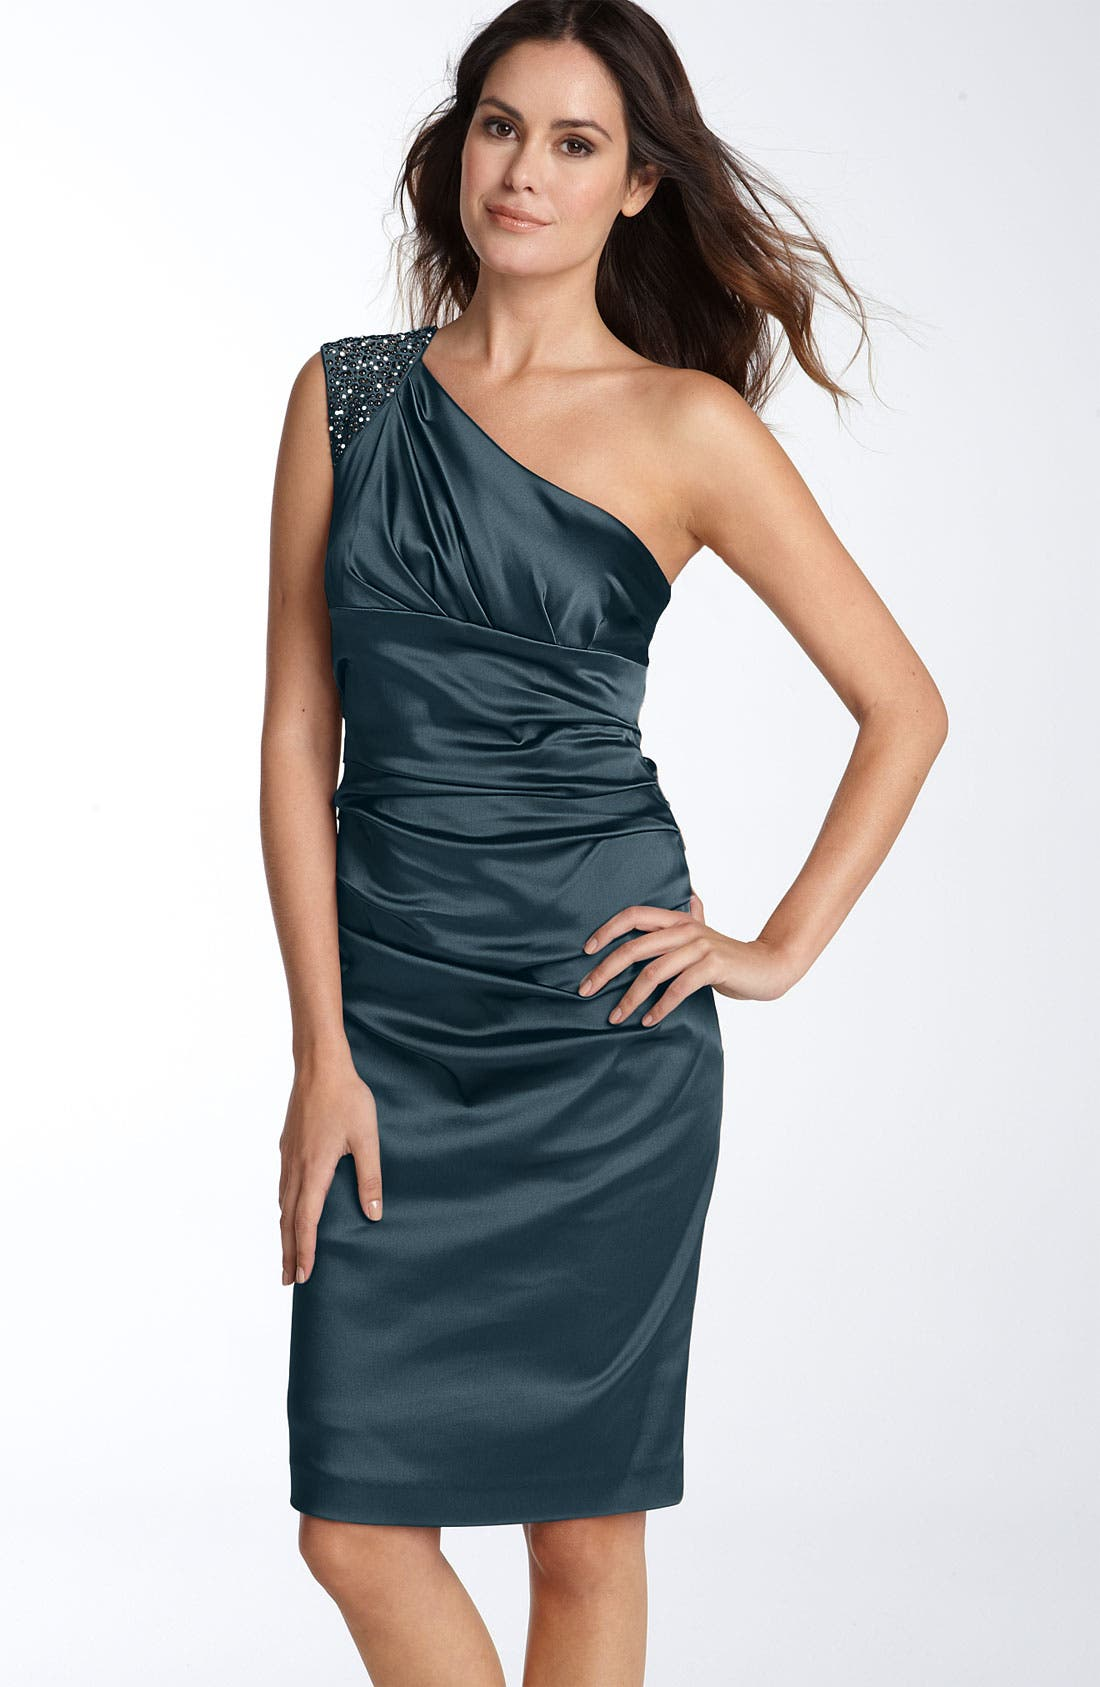 Main Image - Suzi Chin for Maggy Boutique Beaded One Shoulder Stretch Satin Sheath Dress